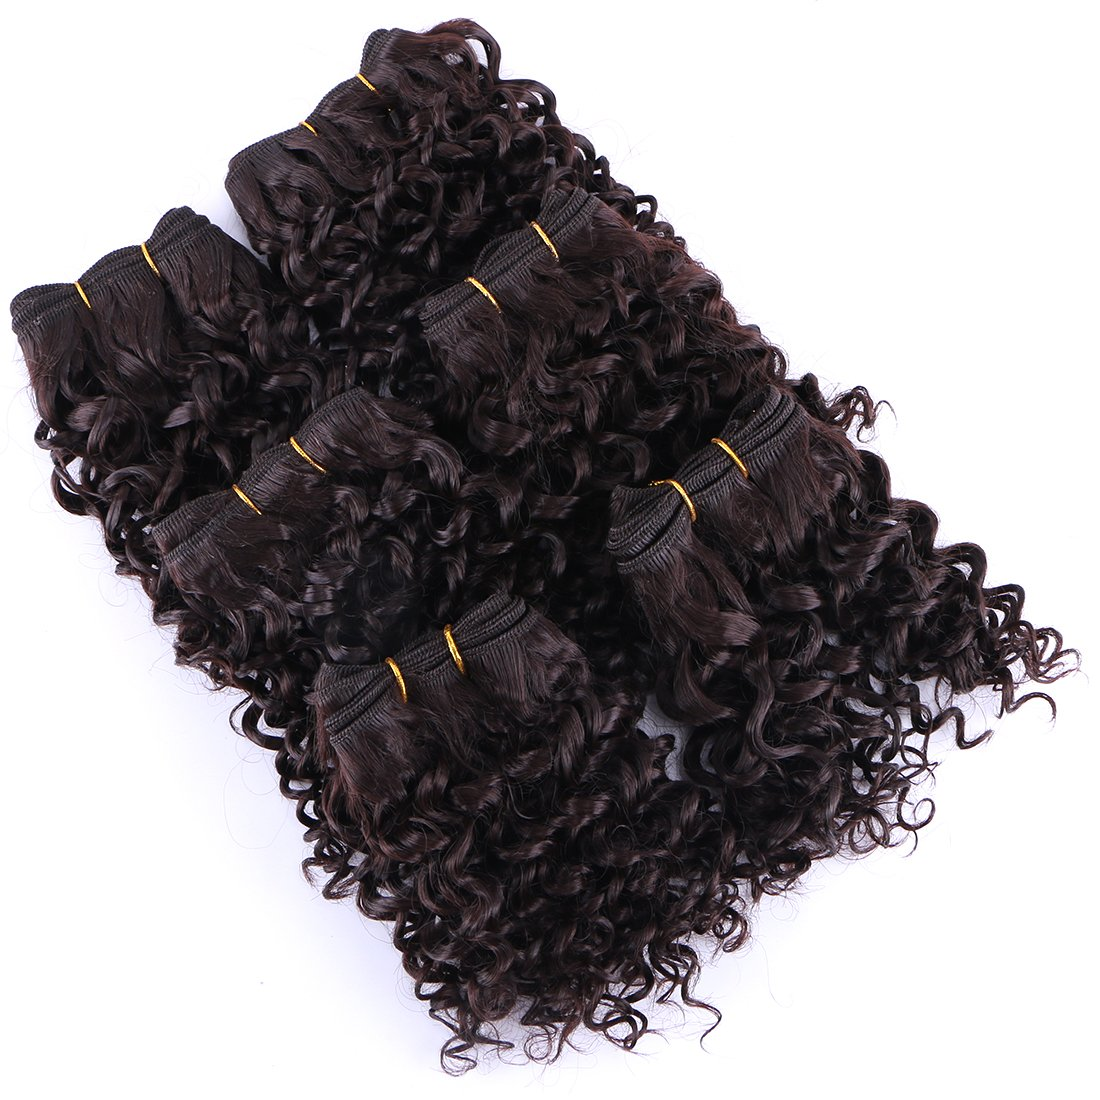 Short Curly Hair Weave 6 Bundles 8 Inches Color 2 Heat Resistant